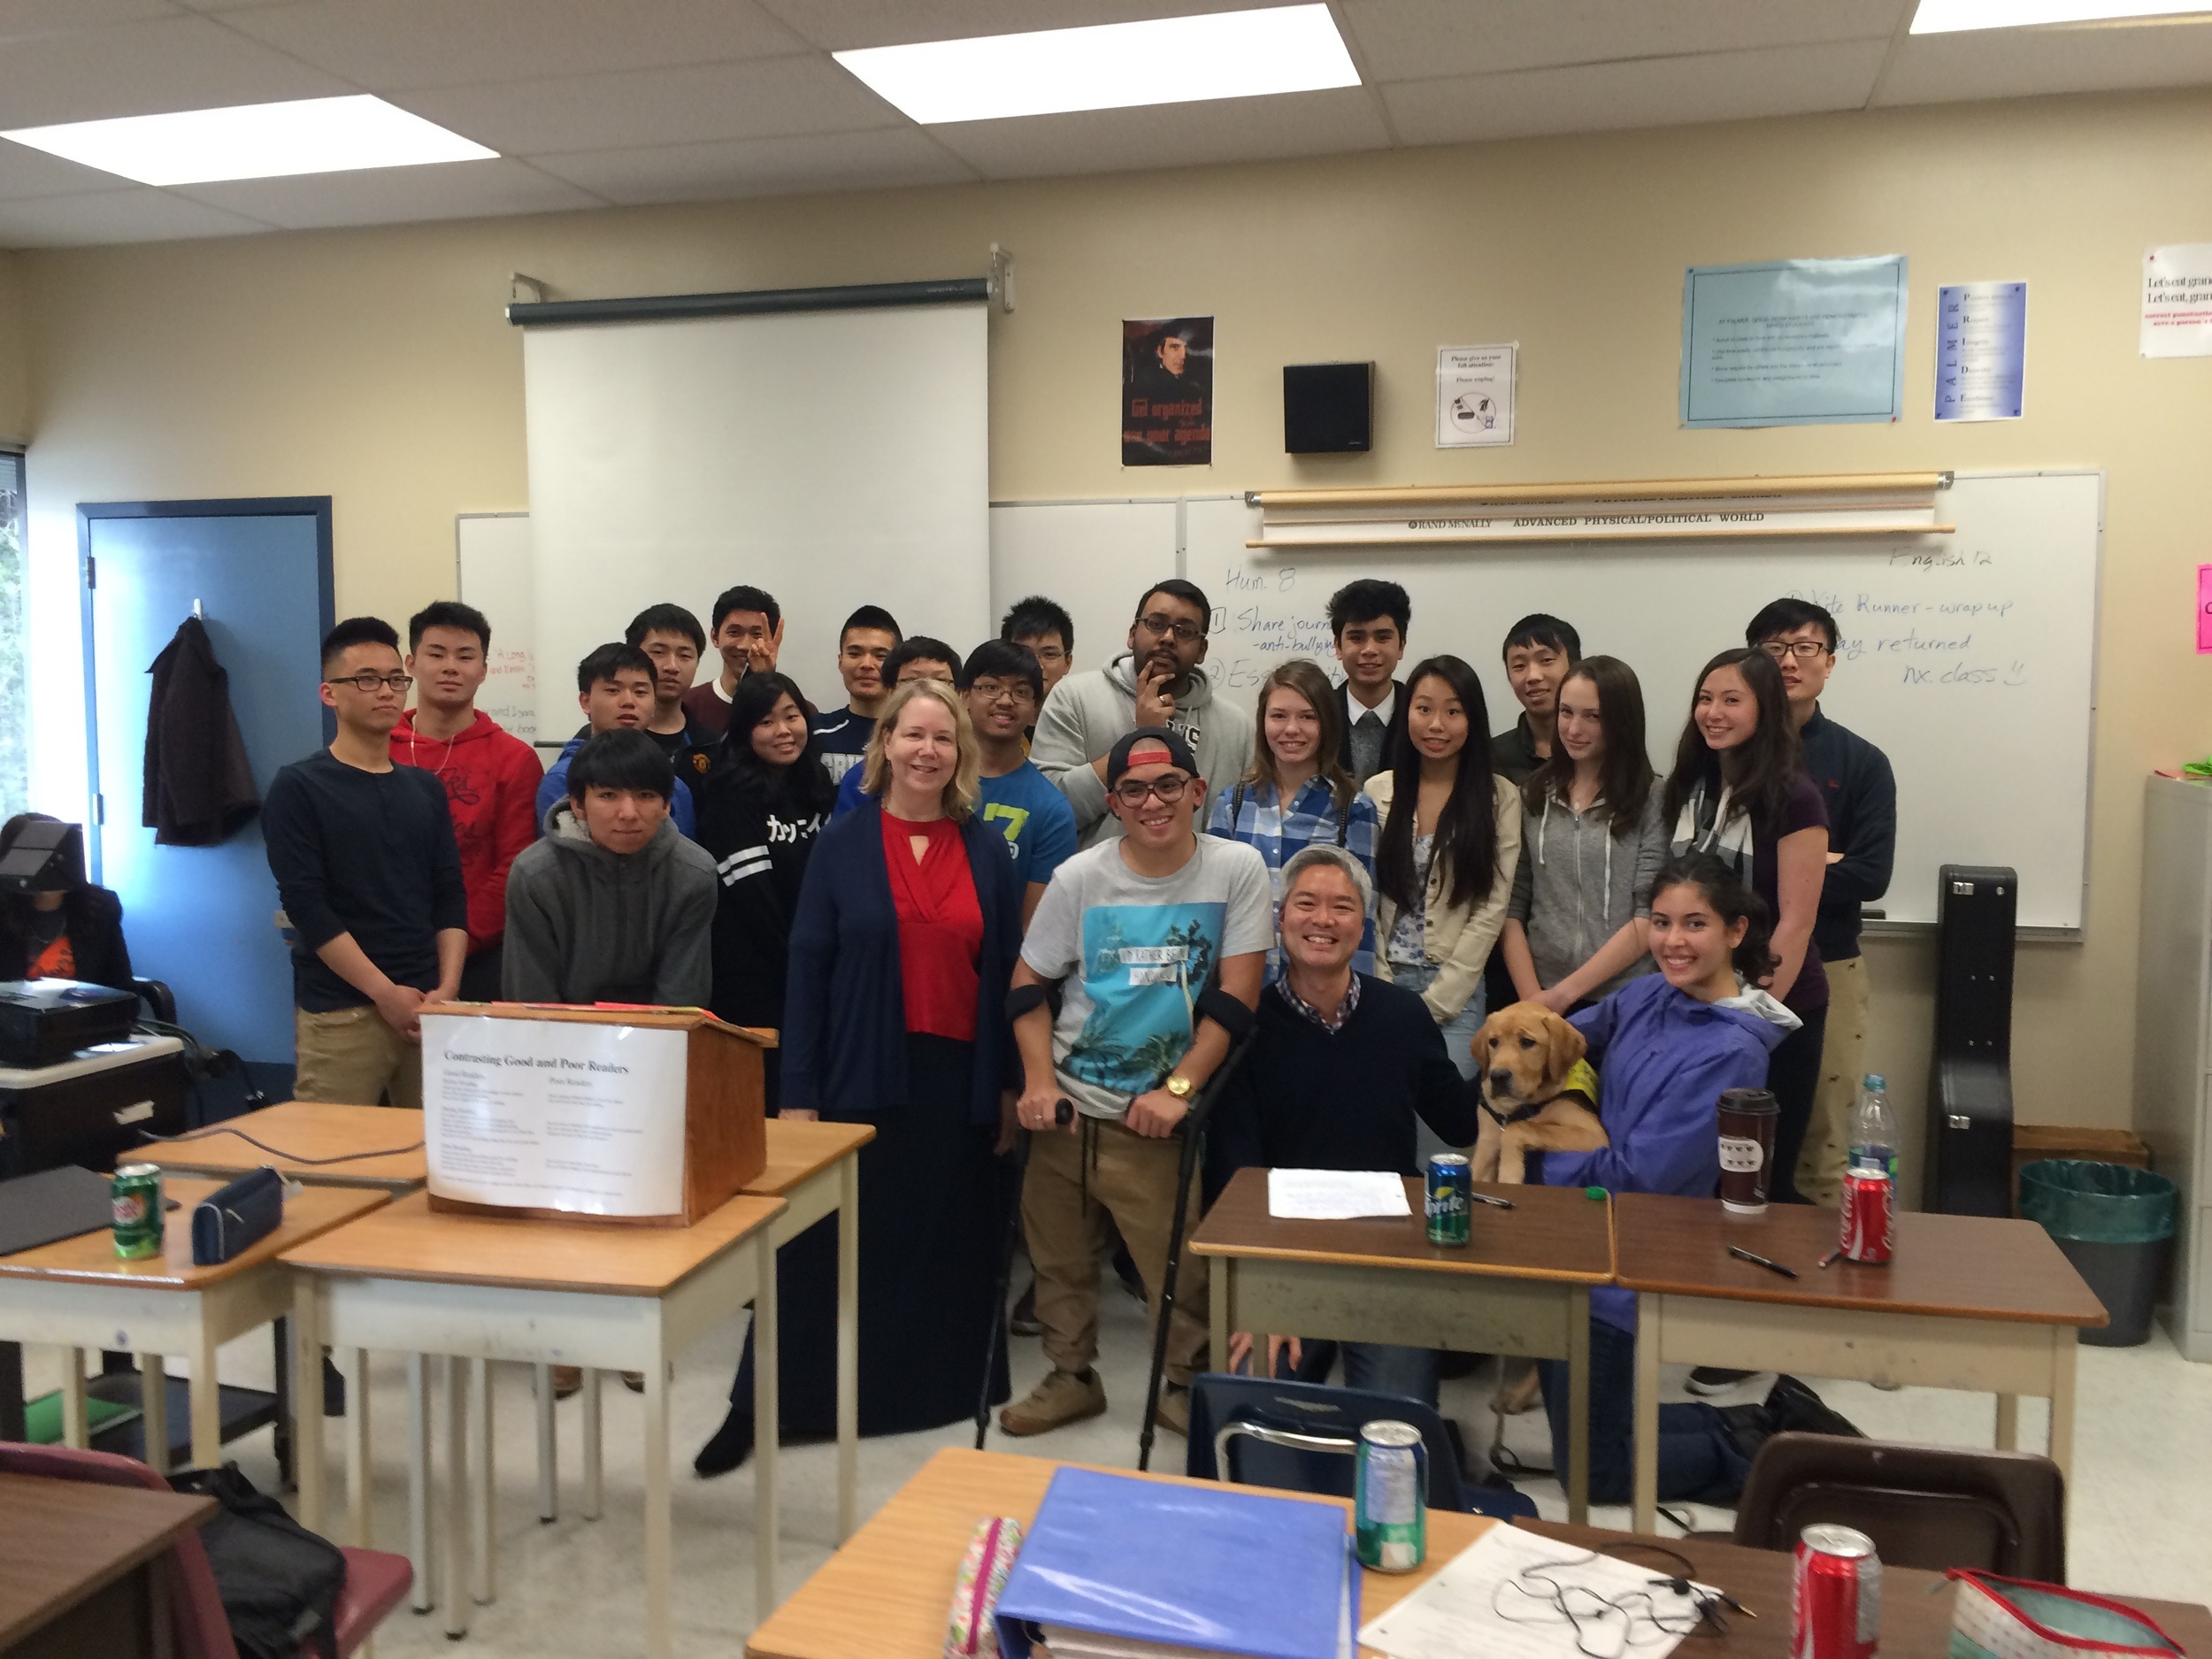 Frontier Poetics wraps up its run at Palmer Secondary